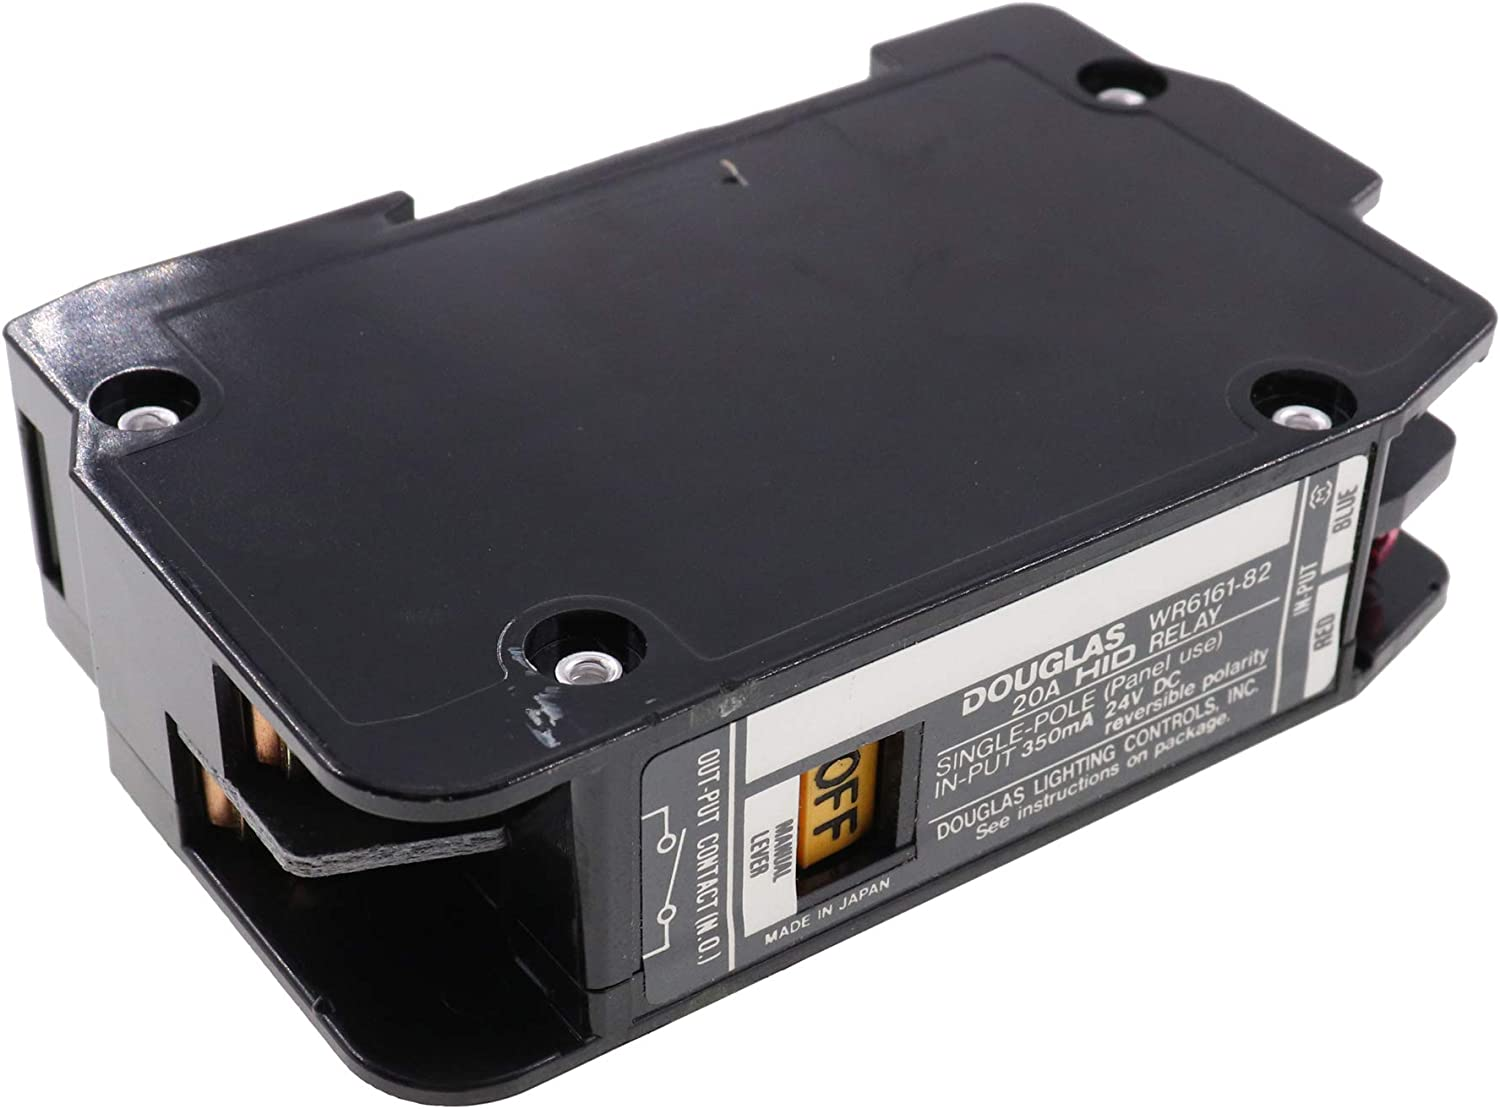 DOUGLAS WR6161K-82  20A HID RELAY  SINGLE POLE